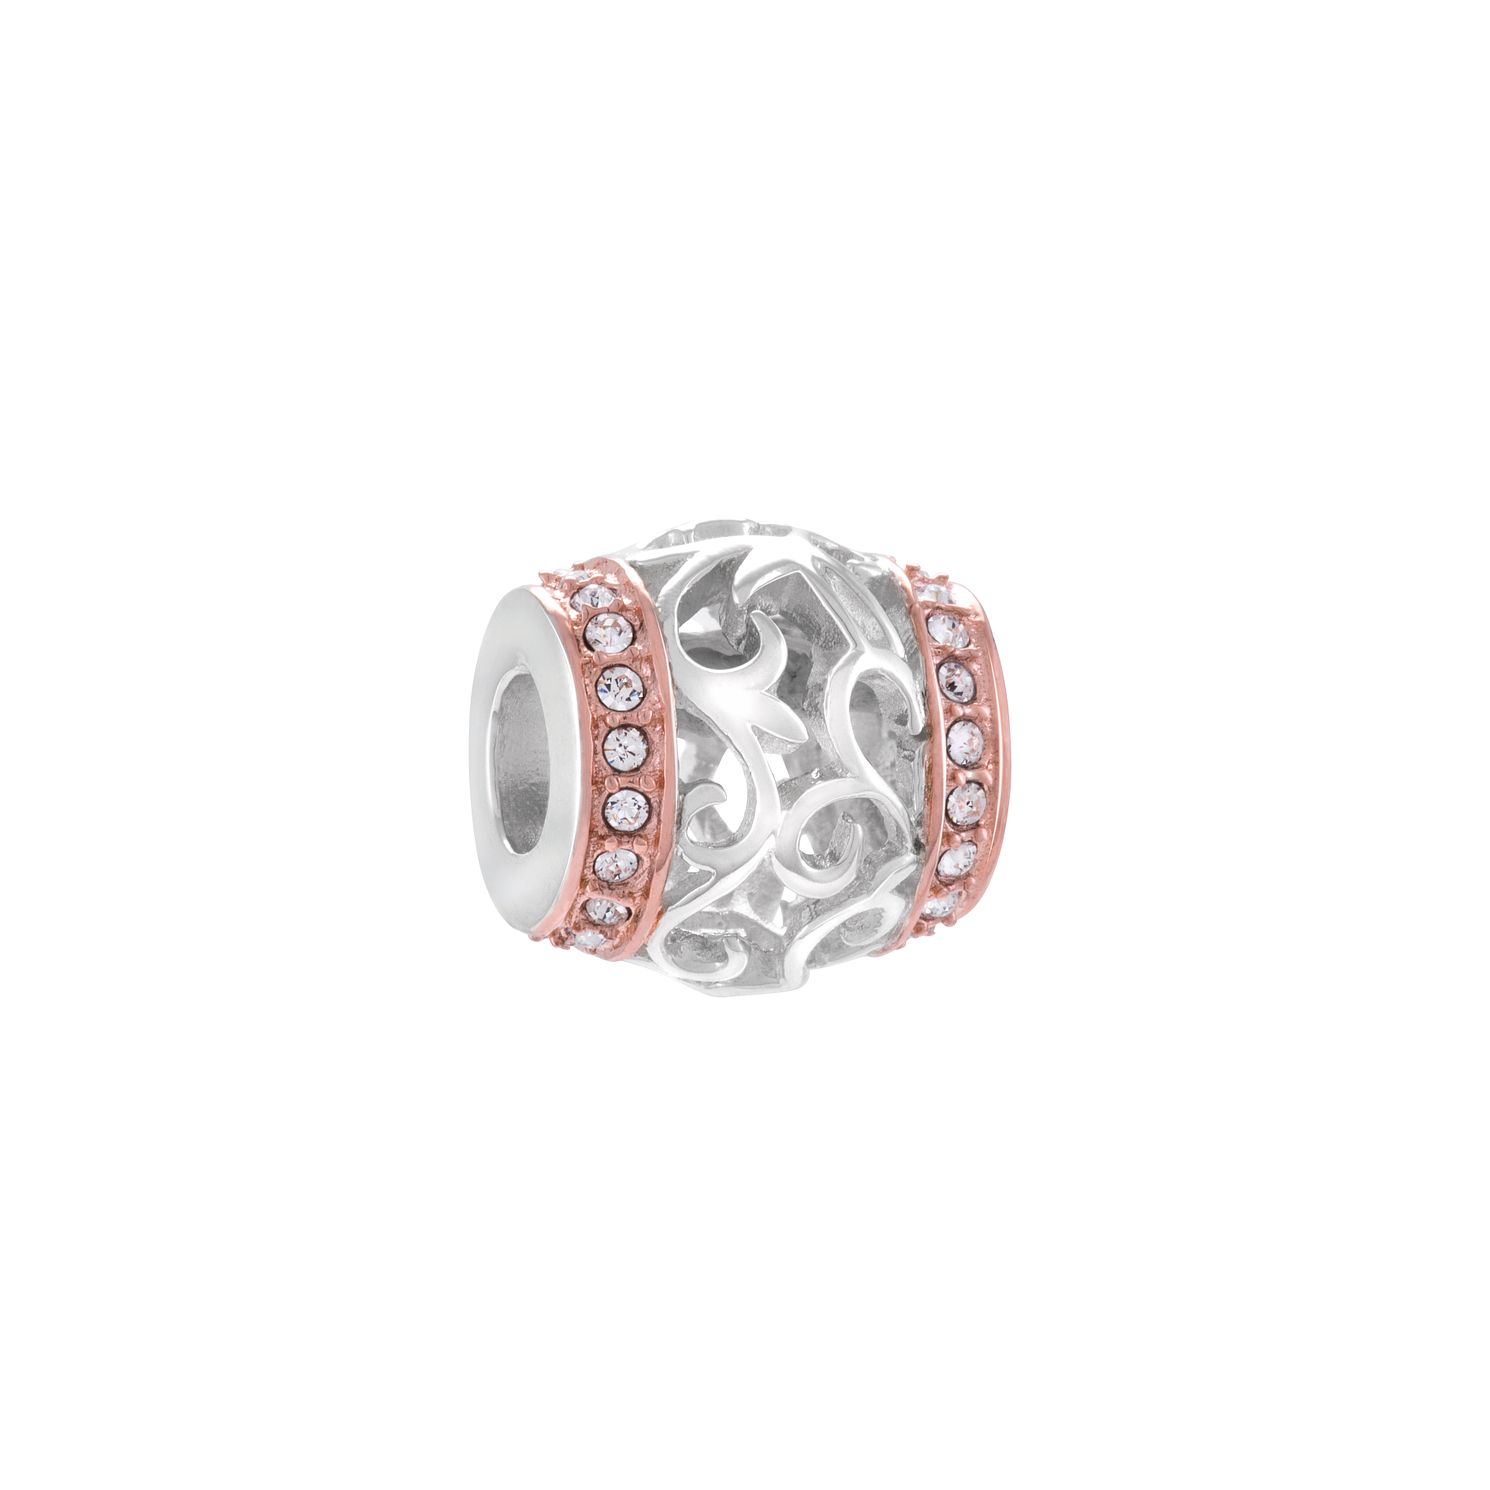 Chamilia Elegance Charm with Rose Gold Electroplating - Product number 4381297